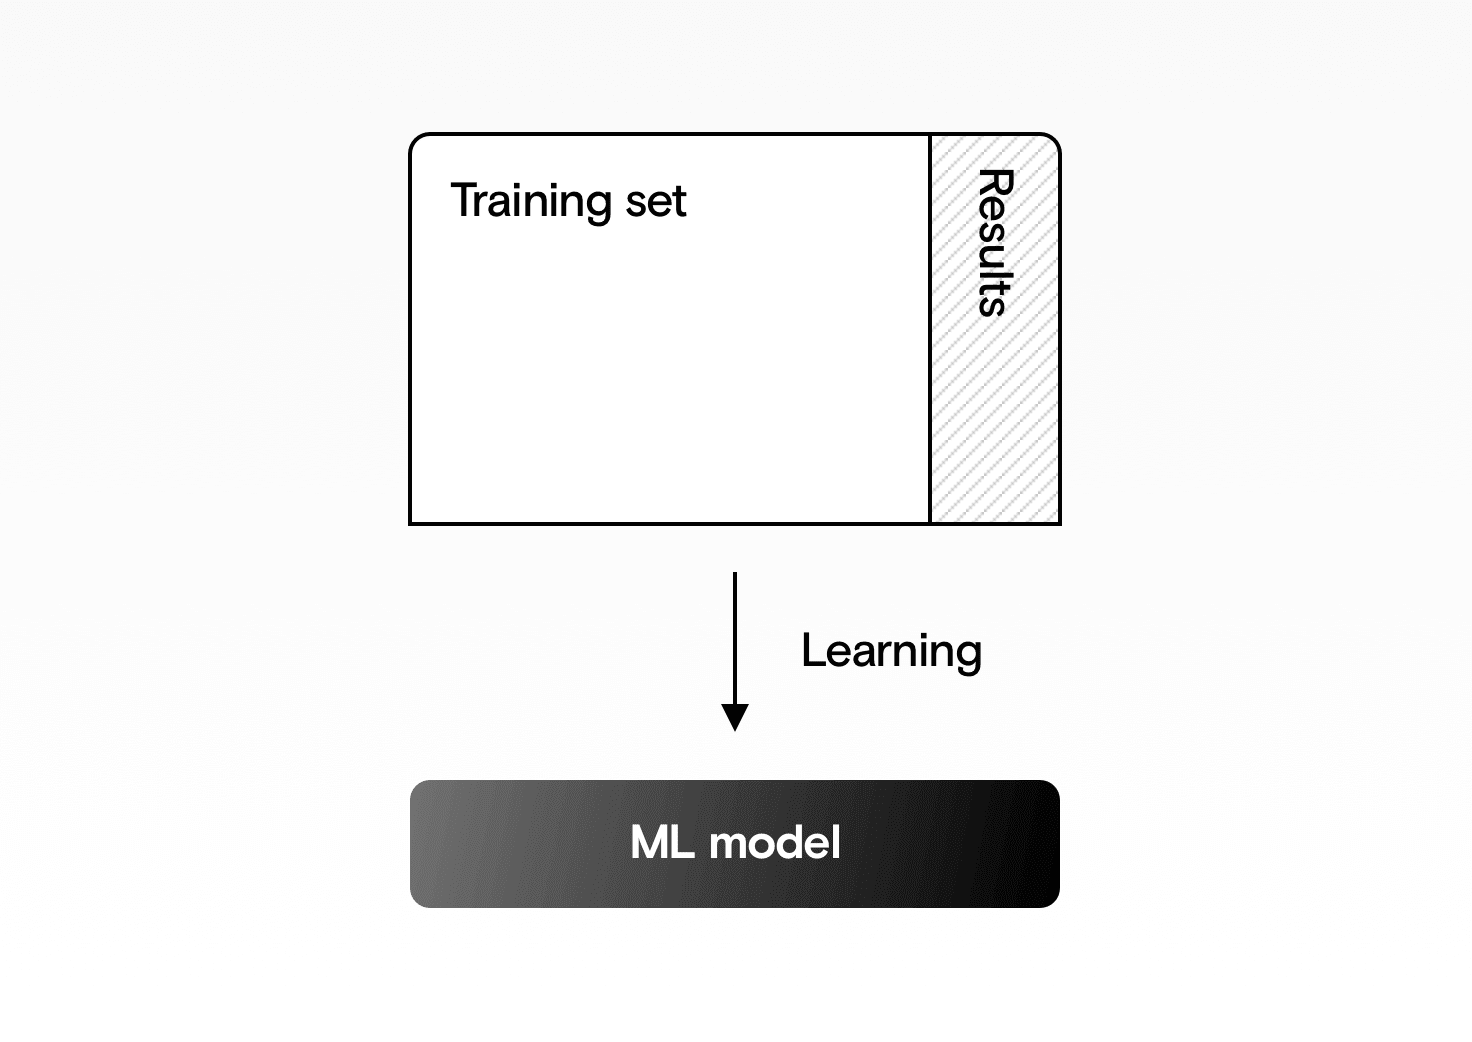 Training a machine learning model on the training set.